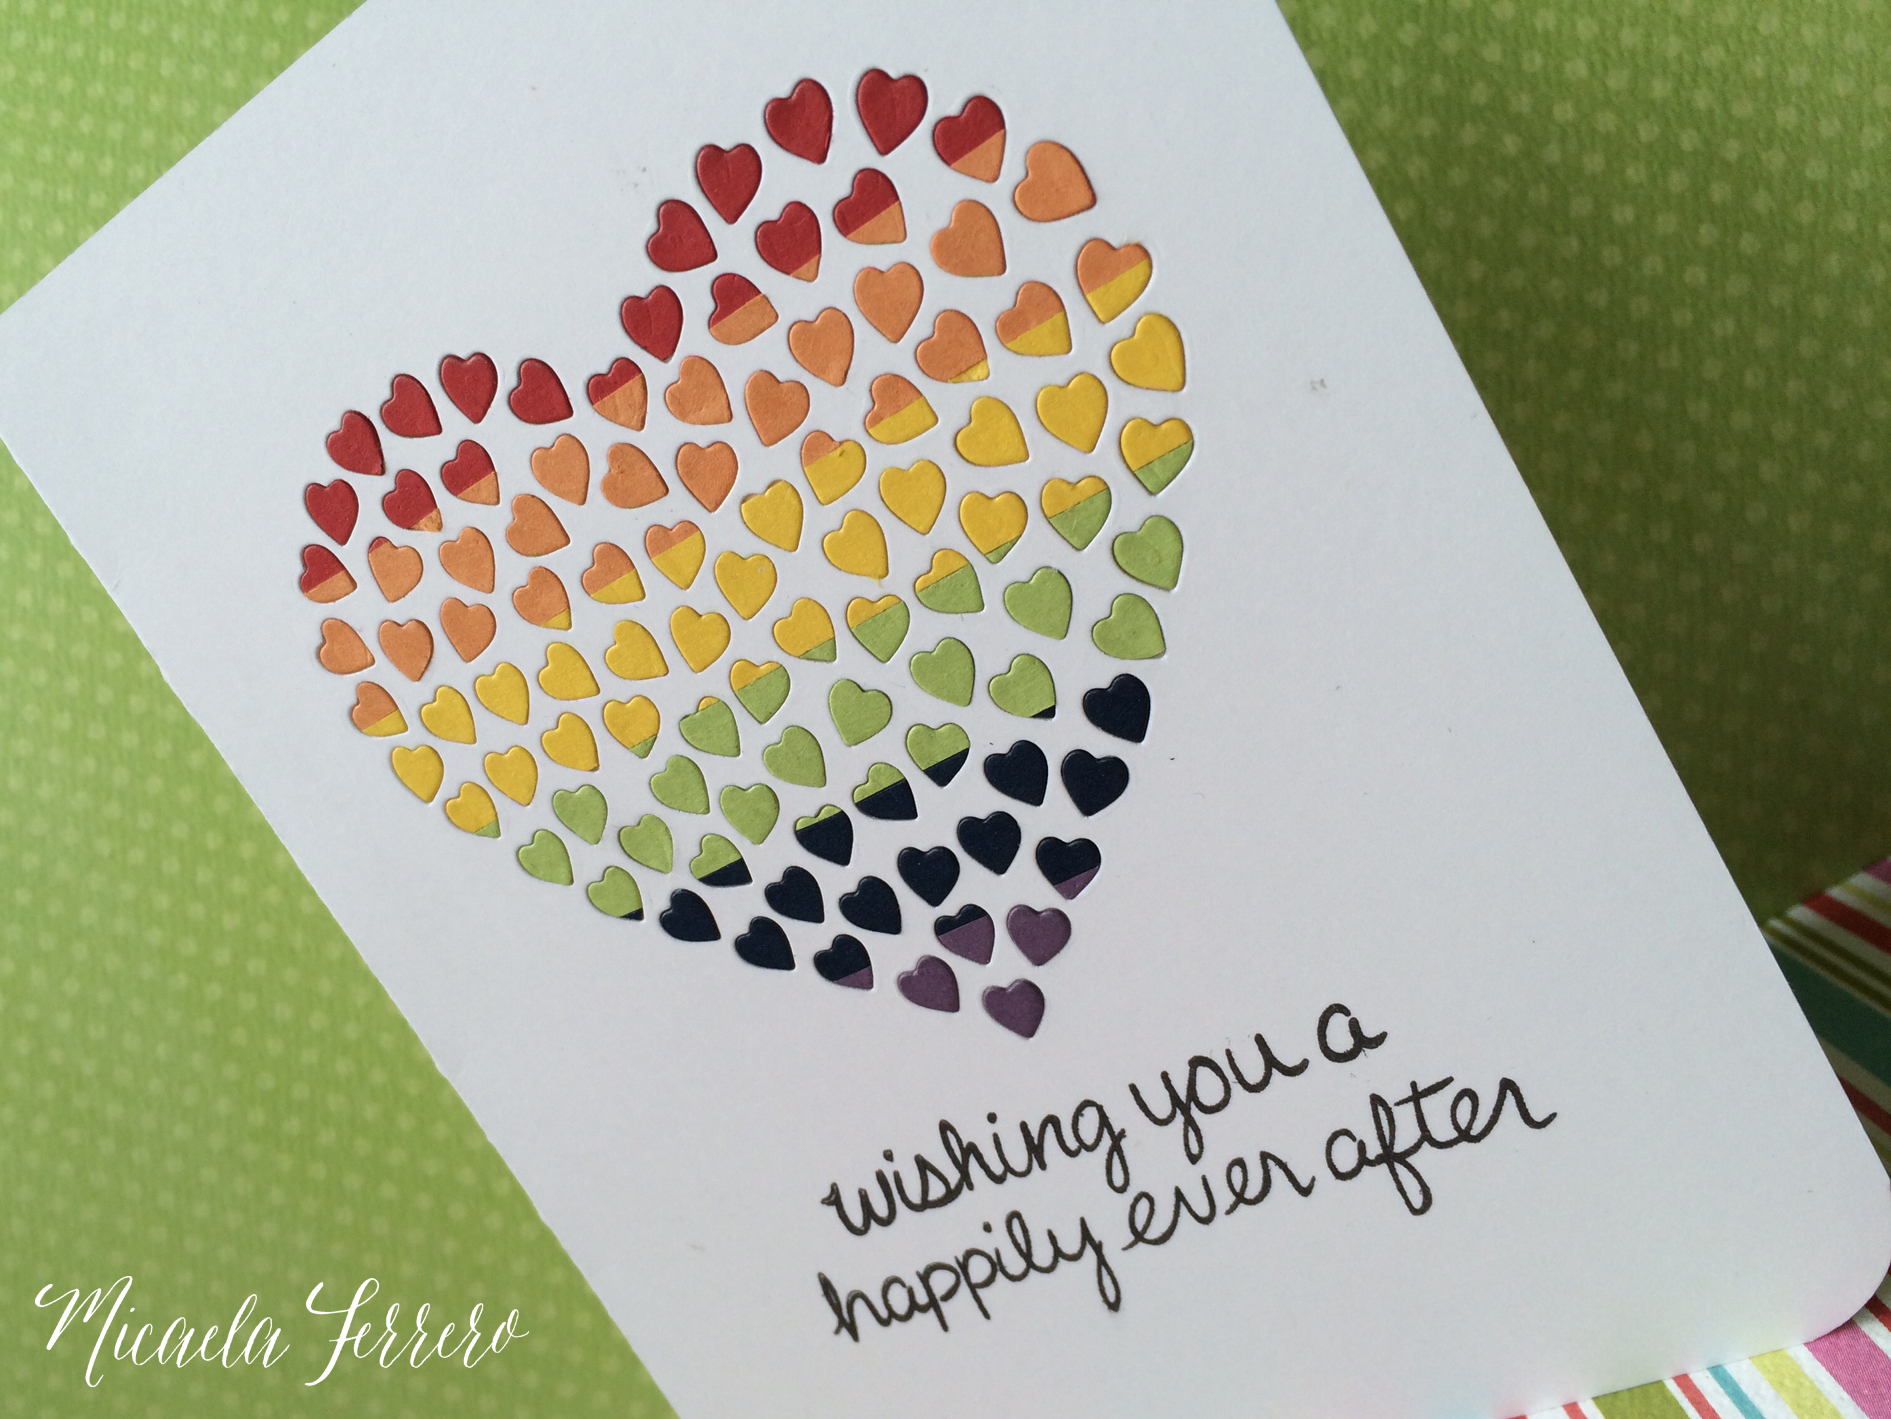 Color Arco Iris – Happily ever After